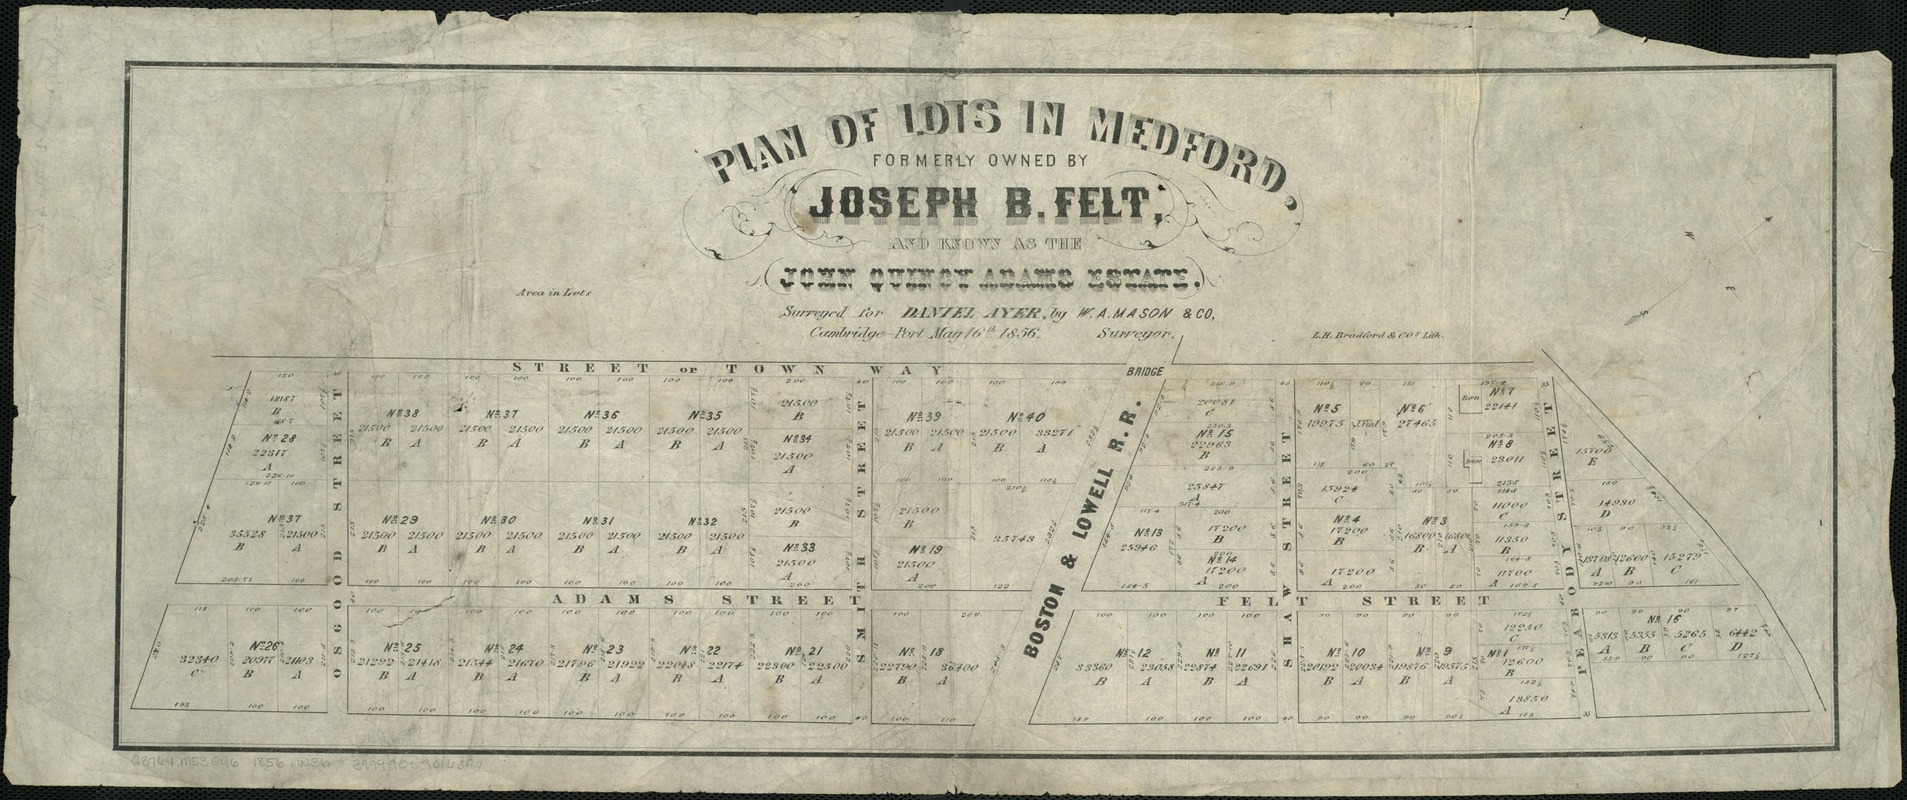 Plan of lots in Medford, formerly owned by Joseph B. Felt, and known as the John Quincy Adams Estate